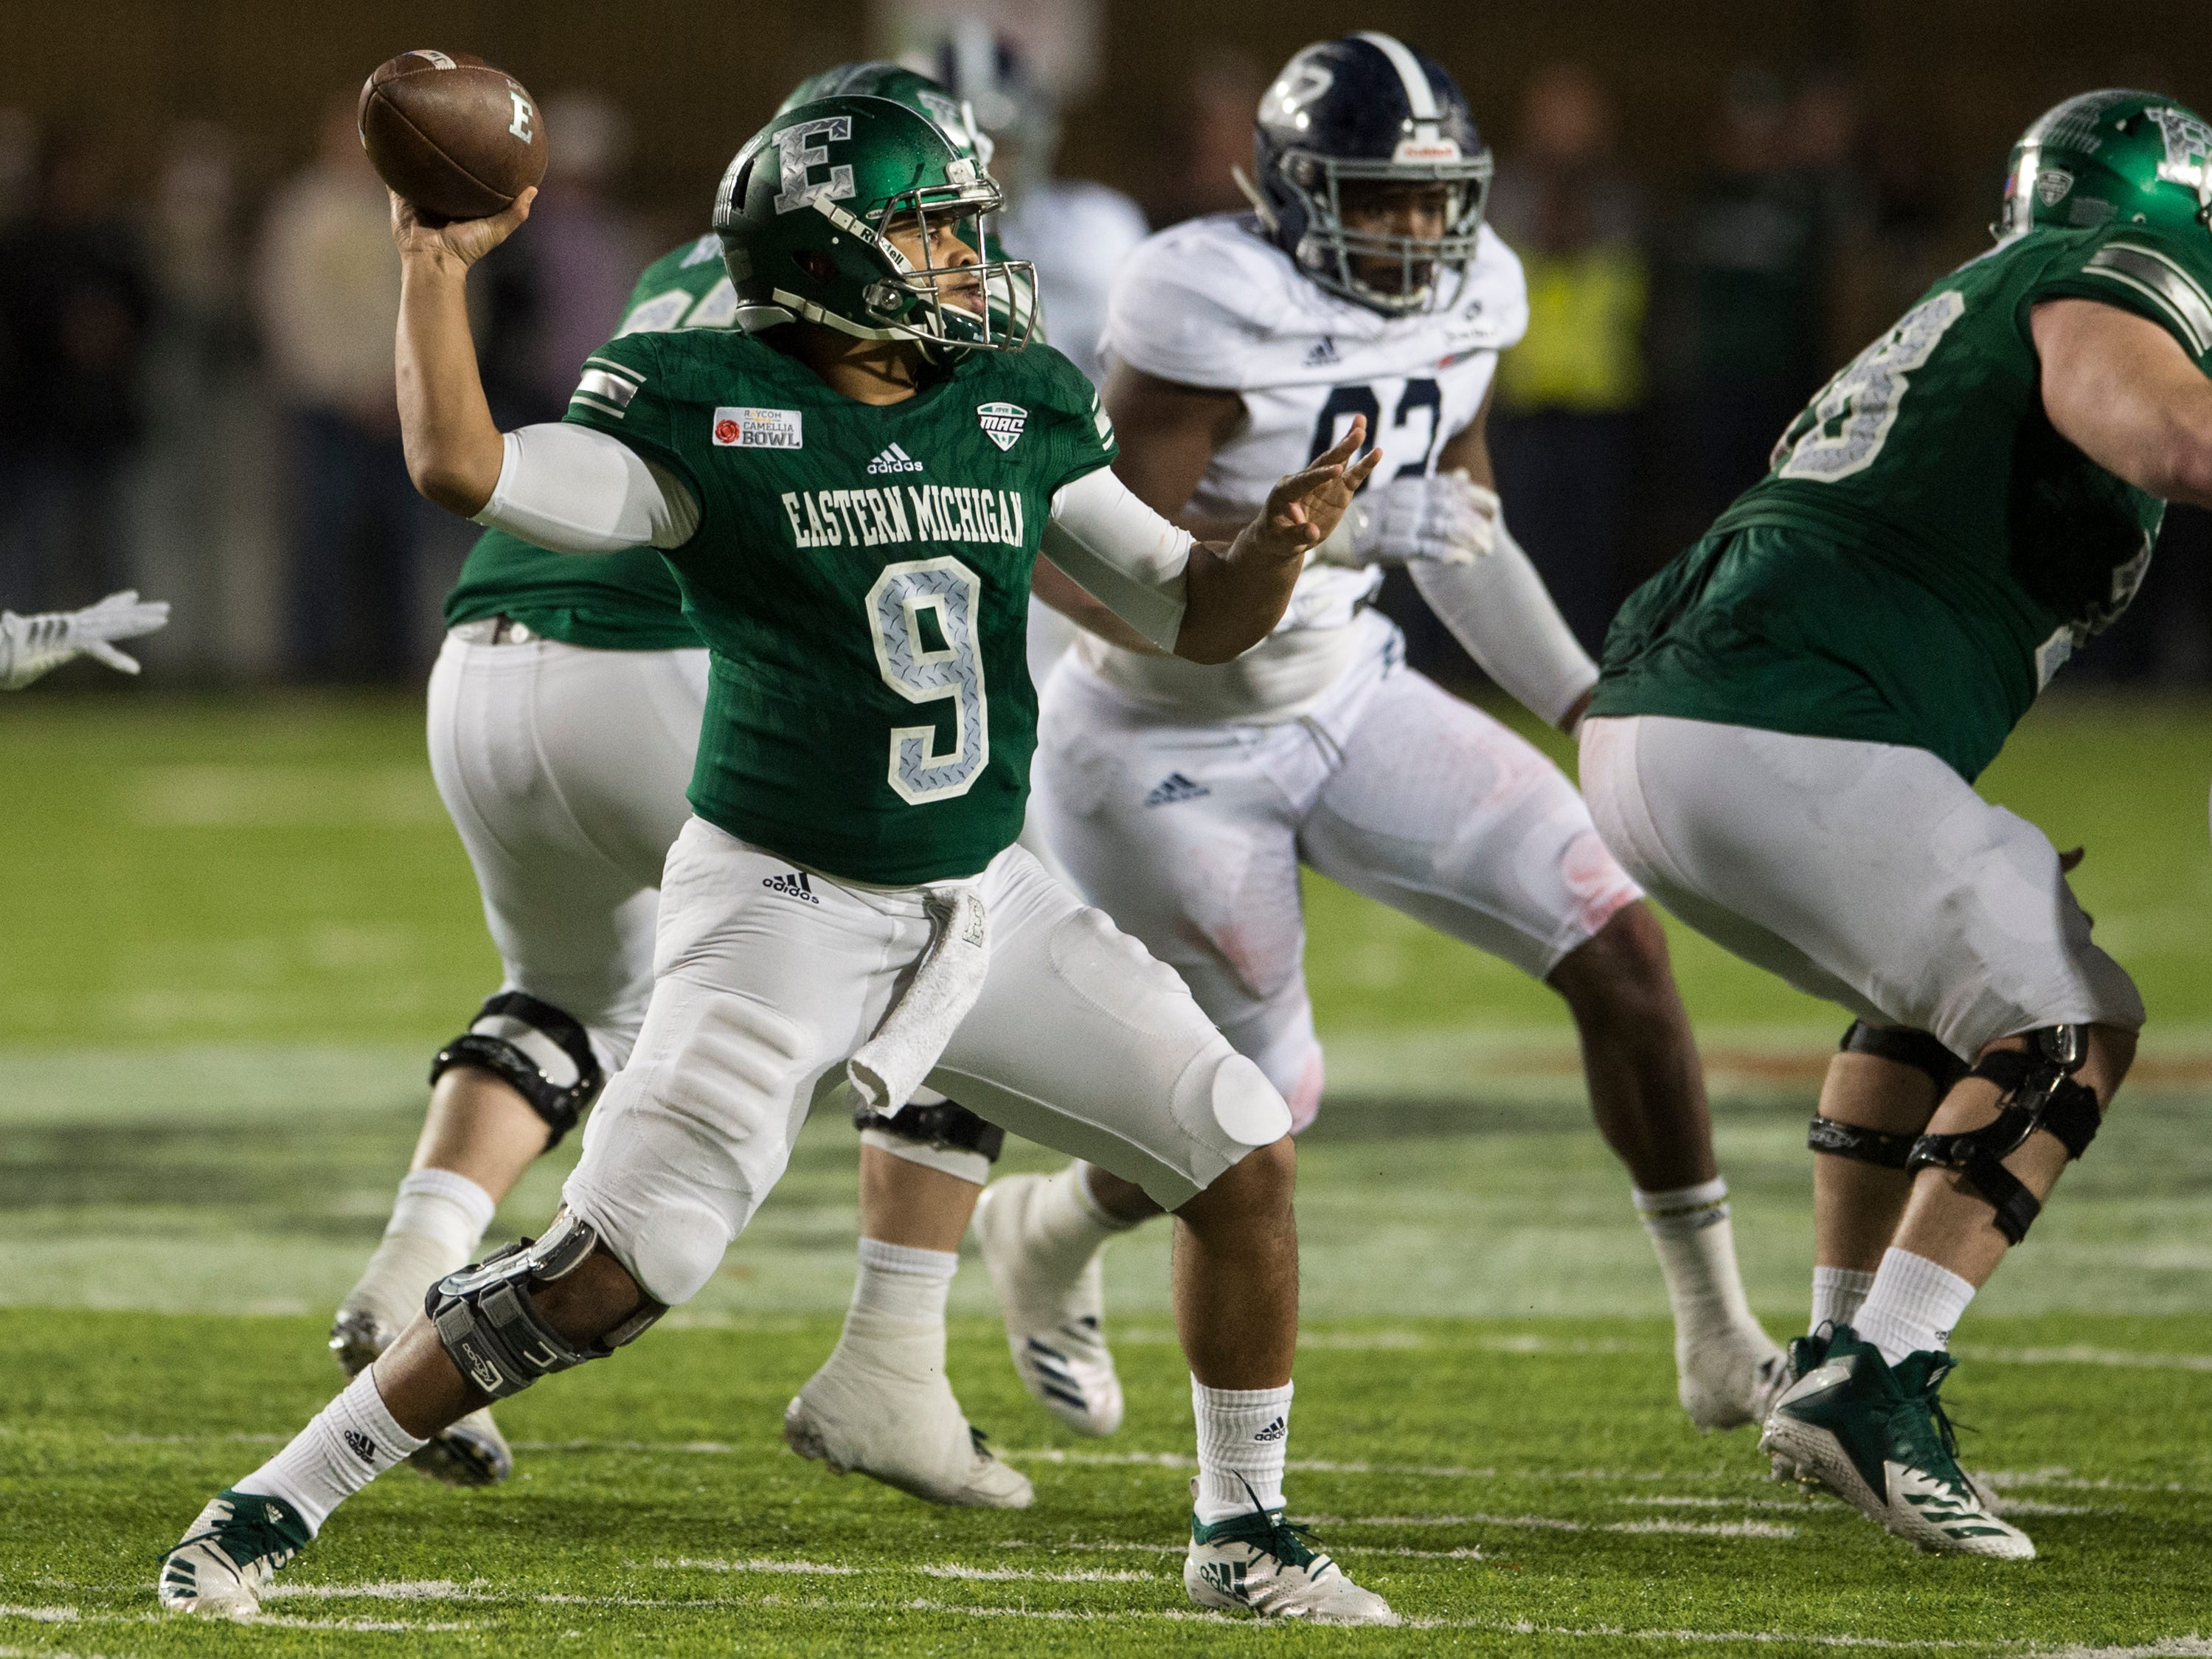 Eastern Michigan quarterback Mike Glass, III, (9) throws the ball during the Camellia Bowl at Cramton Bowl in Montgomery, Ala., on Saturday, Dec. 15, 2018. Georgia Southern defeated Eastern Michigan 23-21.